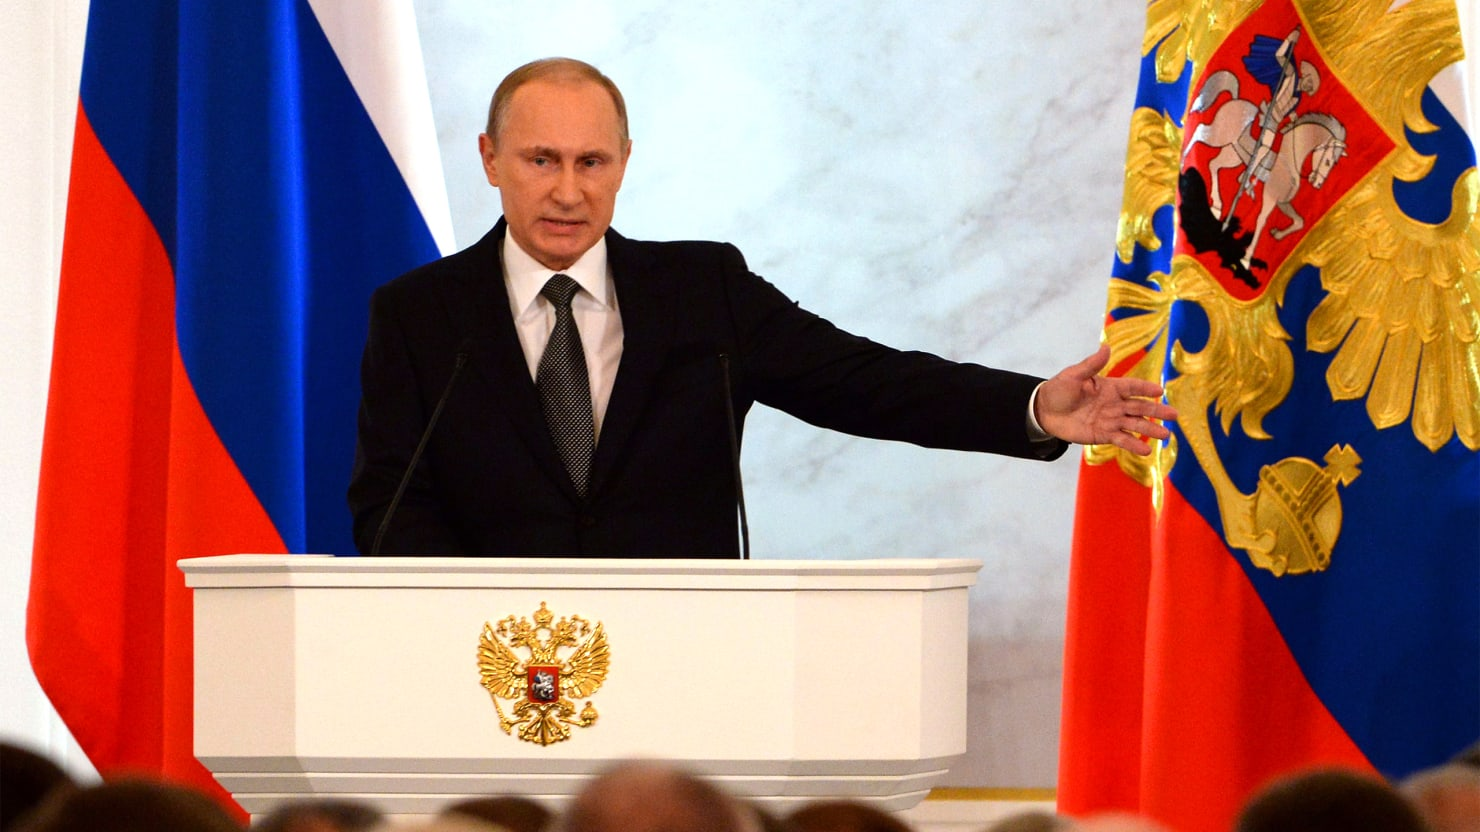 Recession? Devaluation? Inflation? Putin Tells Russia Stay the Course.